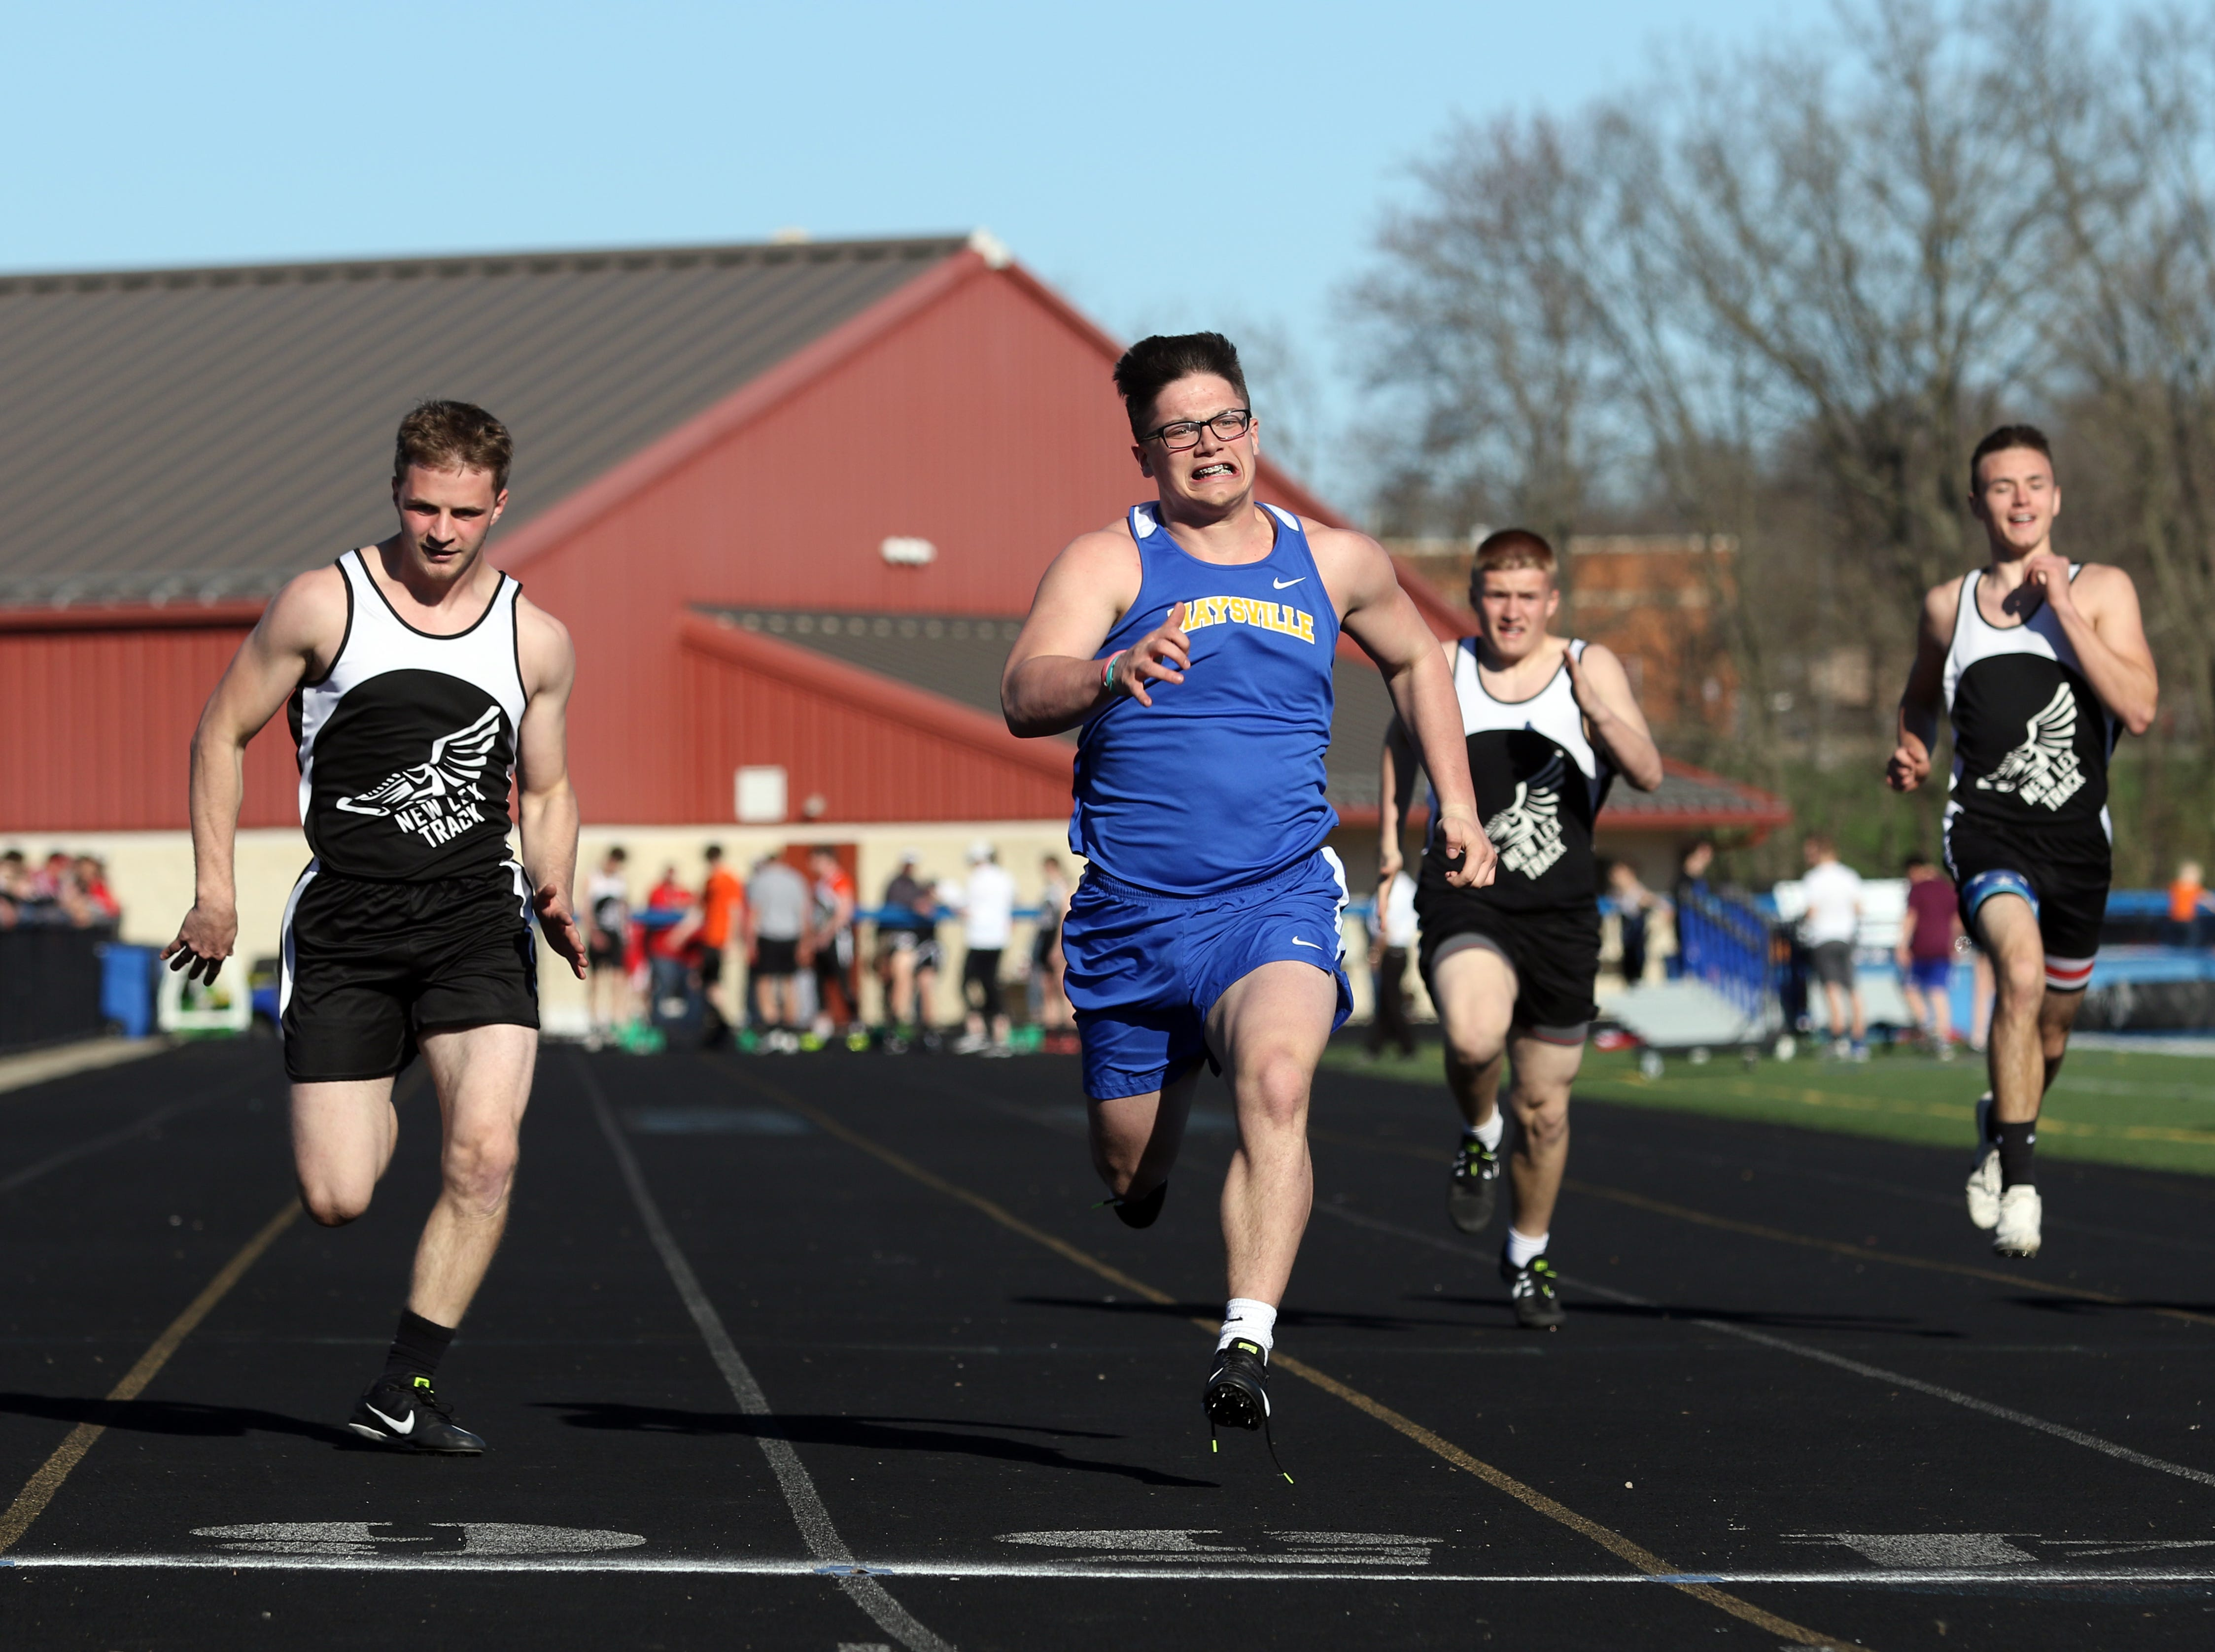 Maysville's Eastin Smith wins his heat of the 100 meter dash during Tuesday's tri-meet between Sheridan, New Lexington and host Maysville.